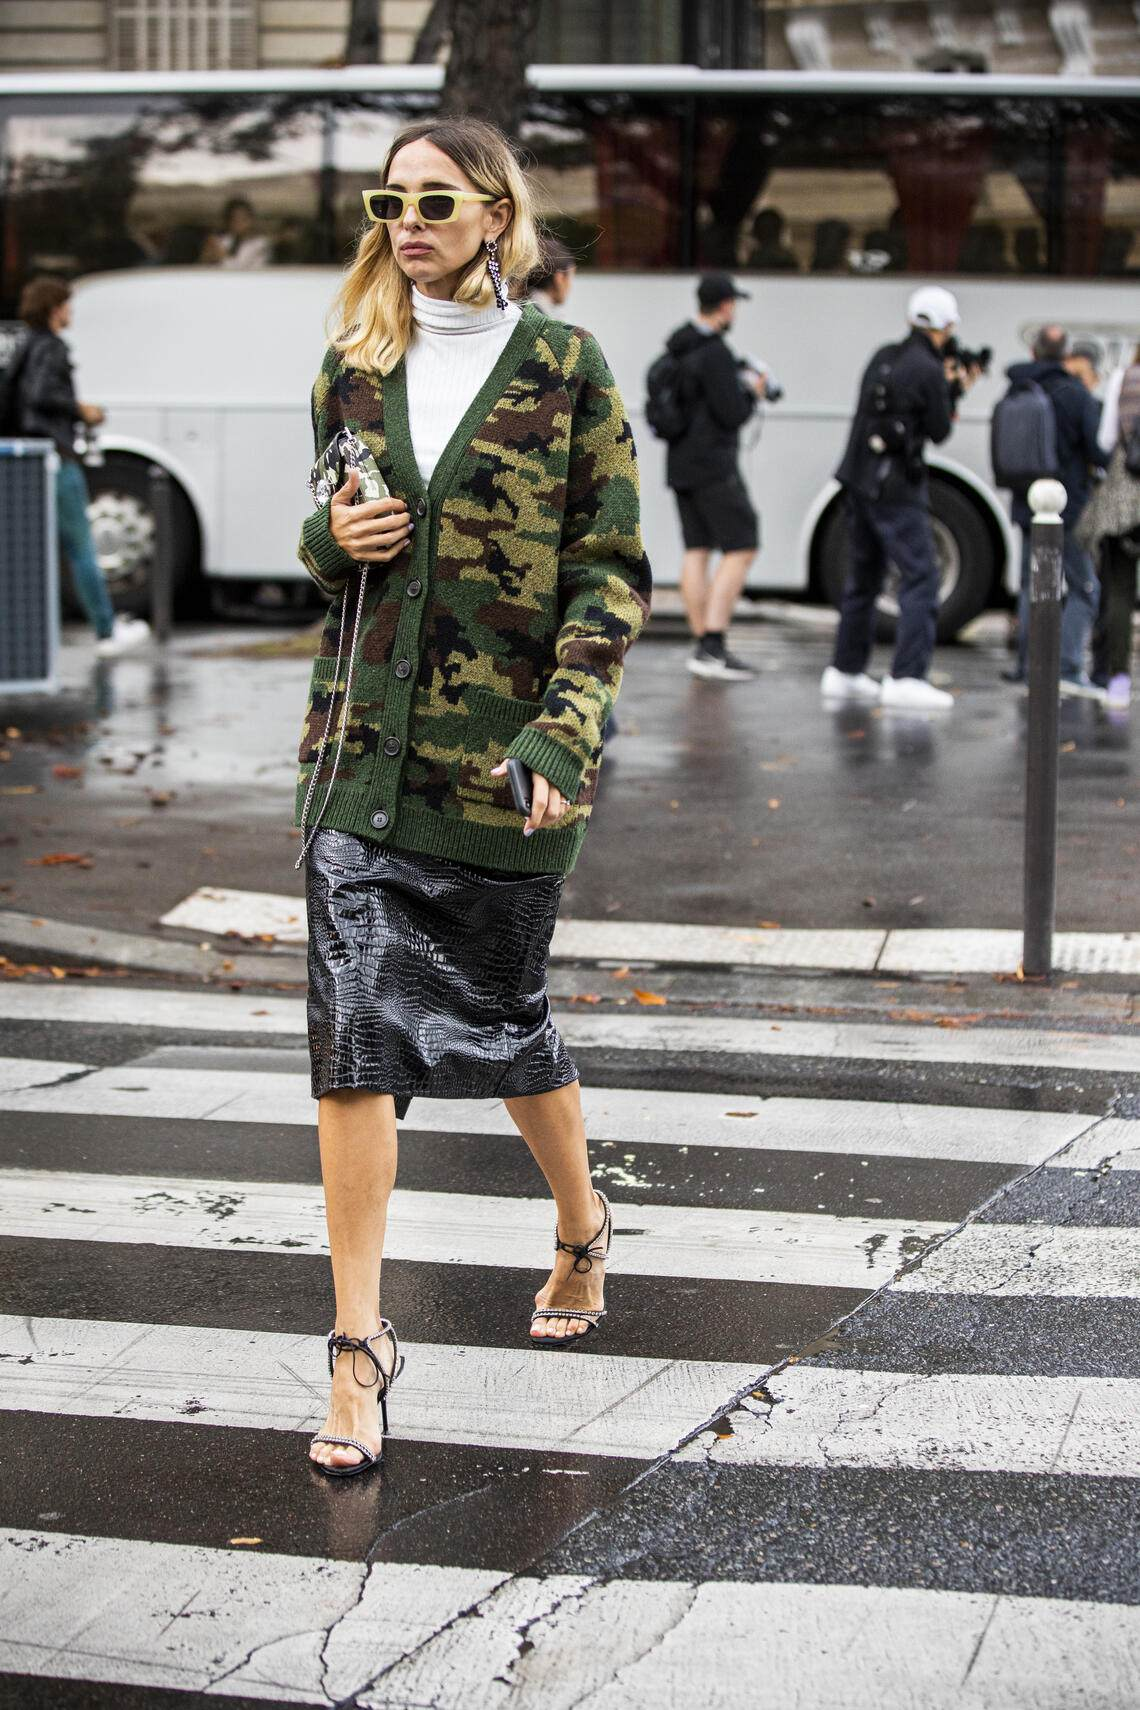 PARIS, FRANCE - OCTOBER 01: Candela Pelizza, wearing a long military print cardigan and black leather midi skirt, is seen outside the Miu Miu show during Paris Fashion Week - Womenswear Spring Summer 2020 on October 01, 2019 in Paris, France. (Photo by Claudio Lavenia/Getty Images)